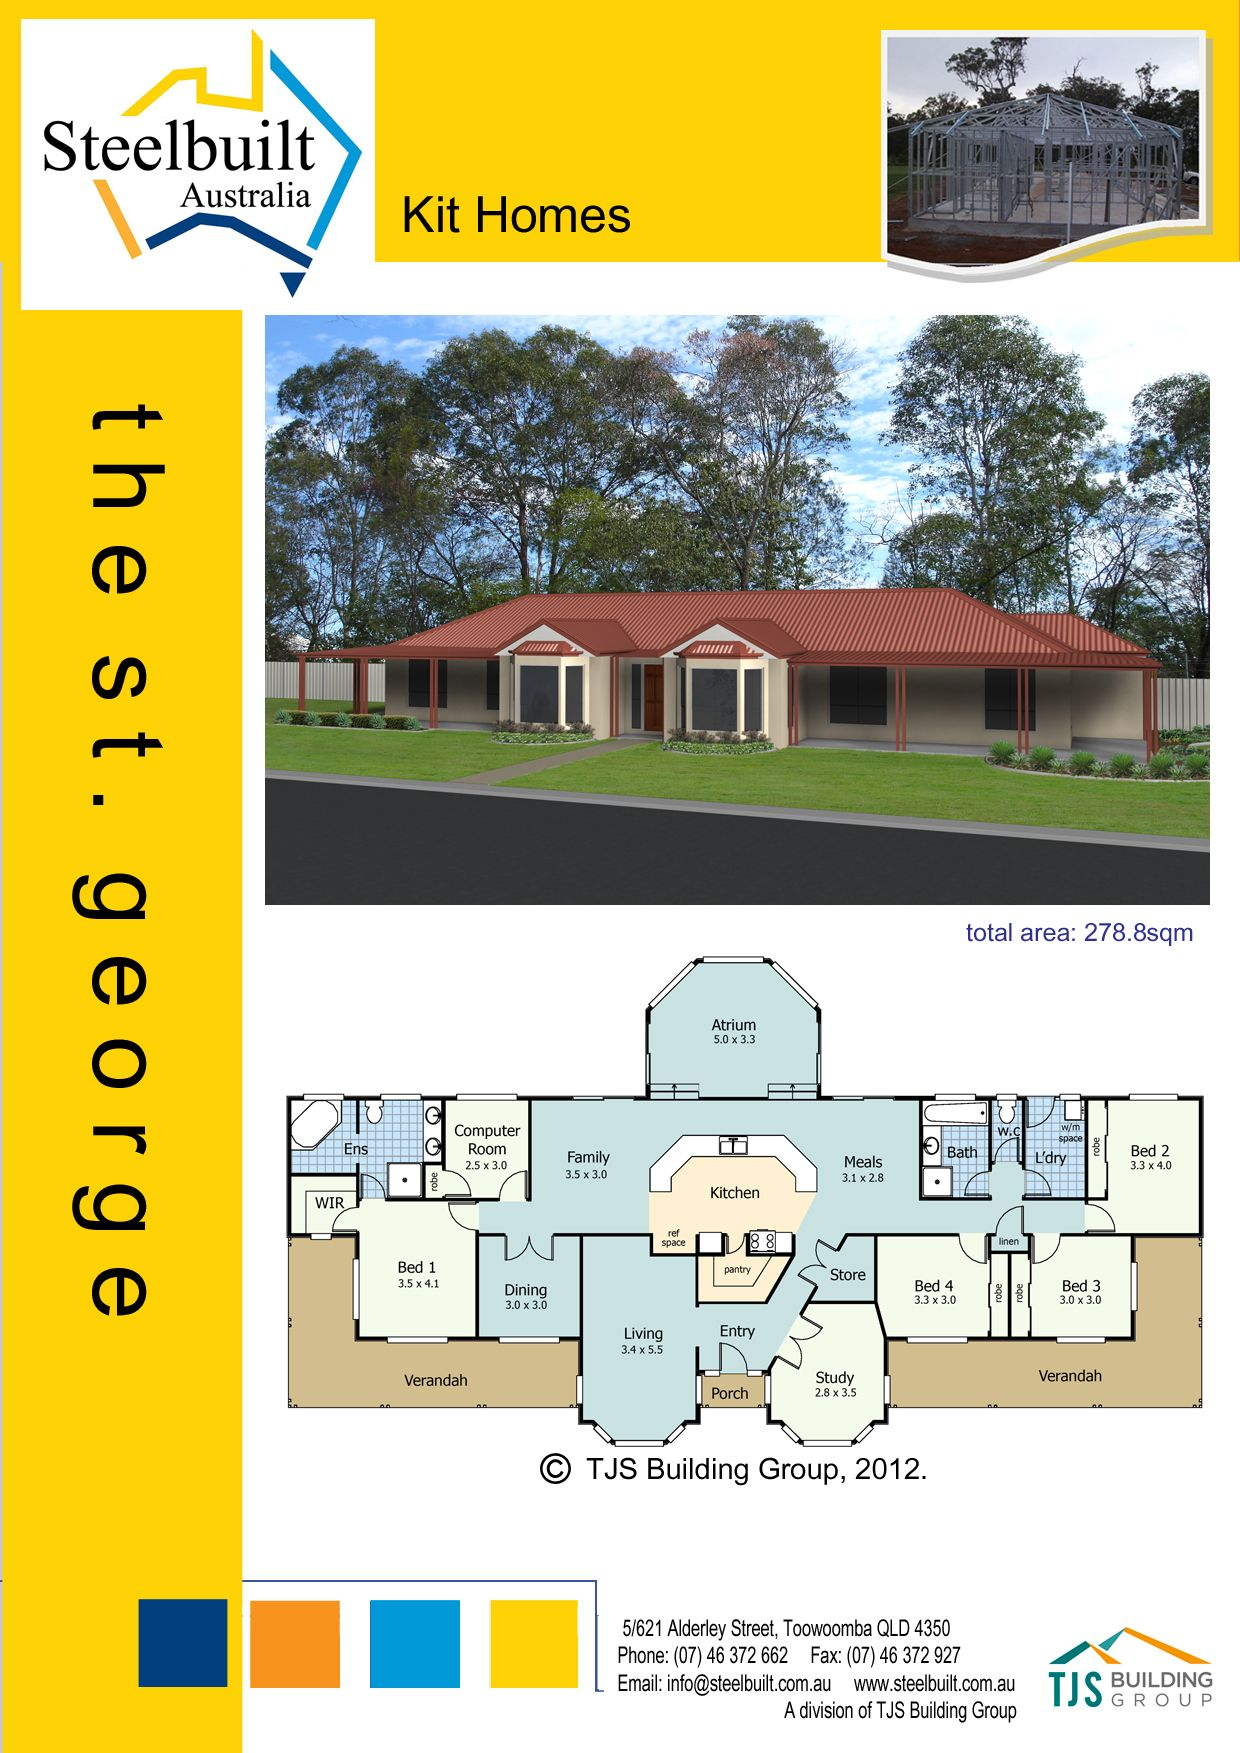 Kit Homes Qld Steel Frame Homes Transportable Homes Steel Kit Homes Kit Homes Owner Builder Granny Flat Kit Homes Steel Frame House Granny Flat